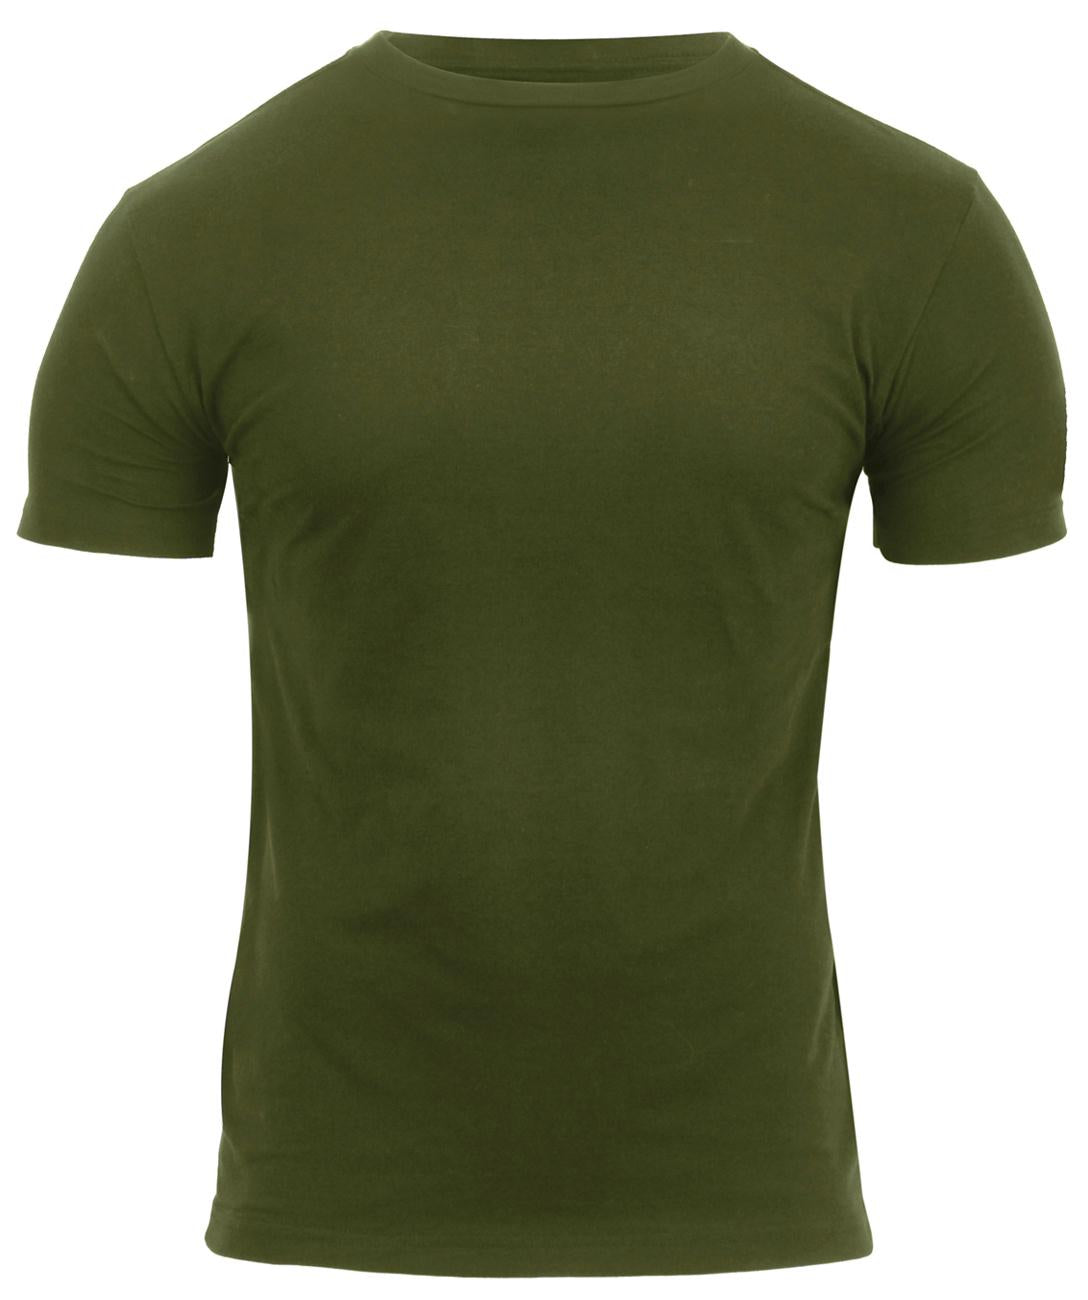 Rothco Athletic Fit Solid Color Military T-Shirt - Olive Drab / S